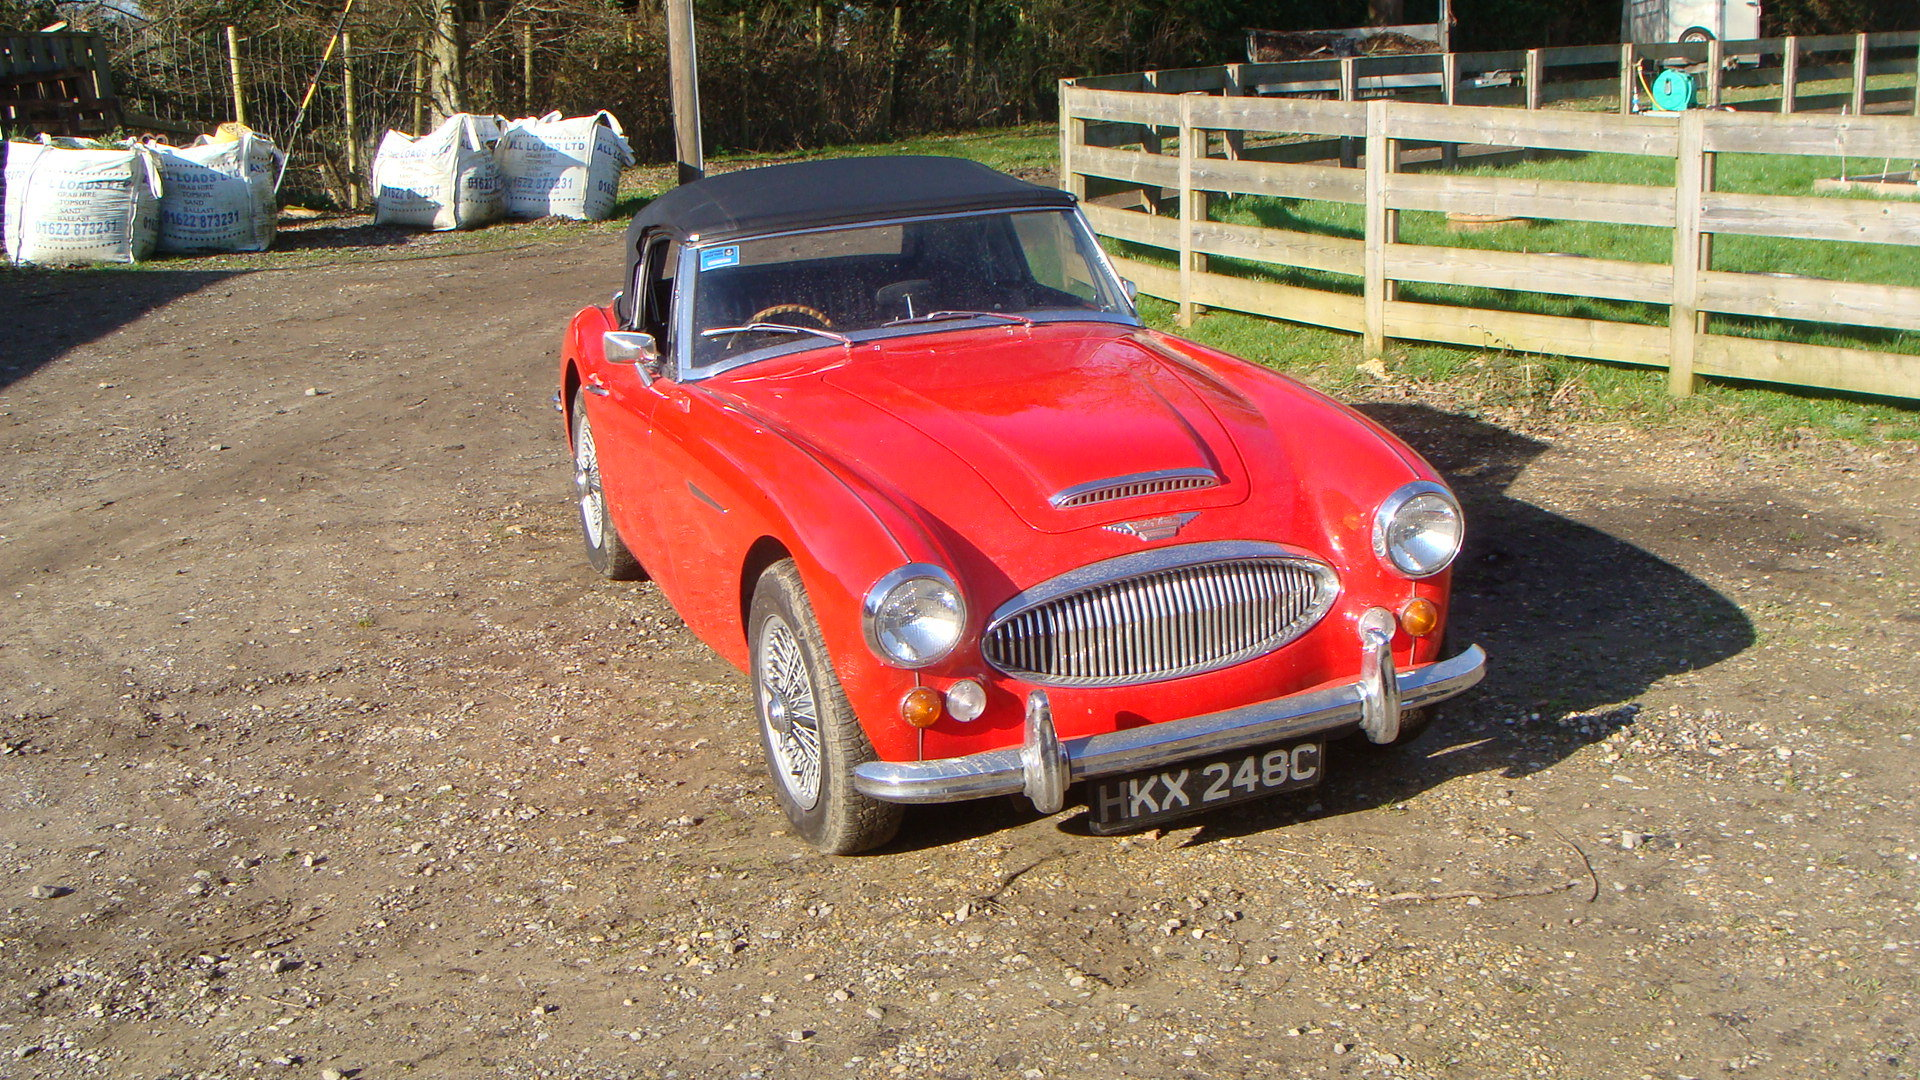 1965 Austin Healey 3000 Mk 111 BJ8 For Sale (picture 2 of 6)